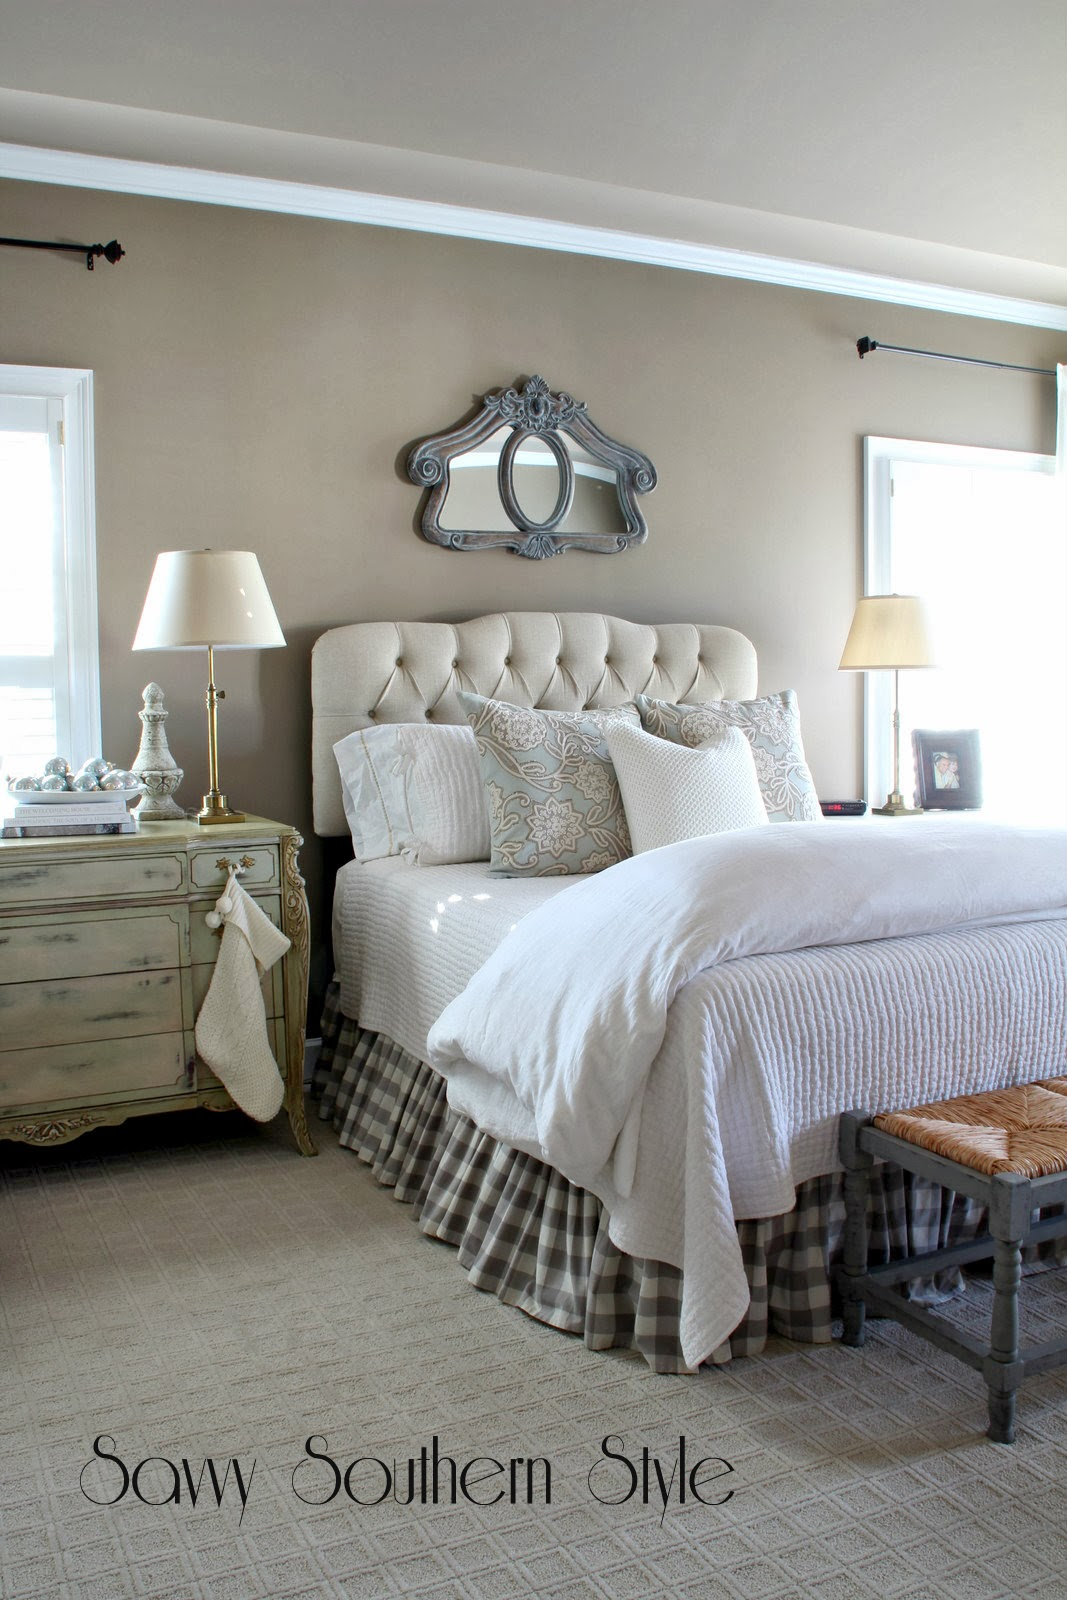 Southern Bedrooms  Onvacations Wallpaper